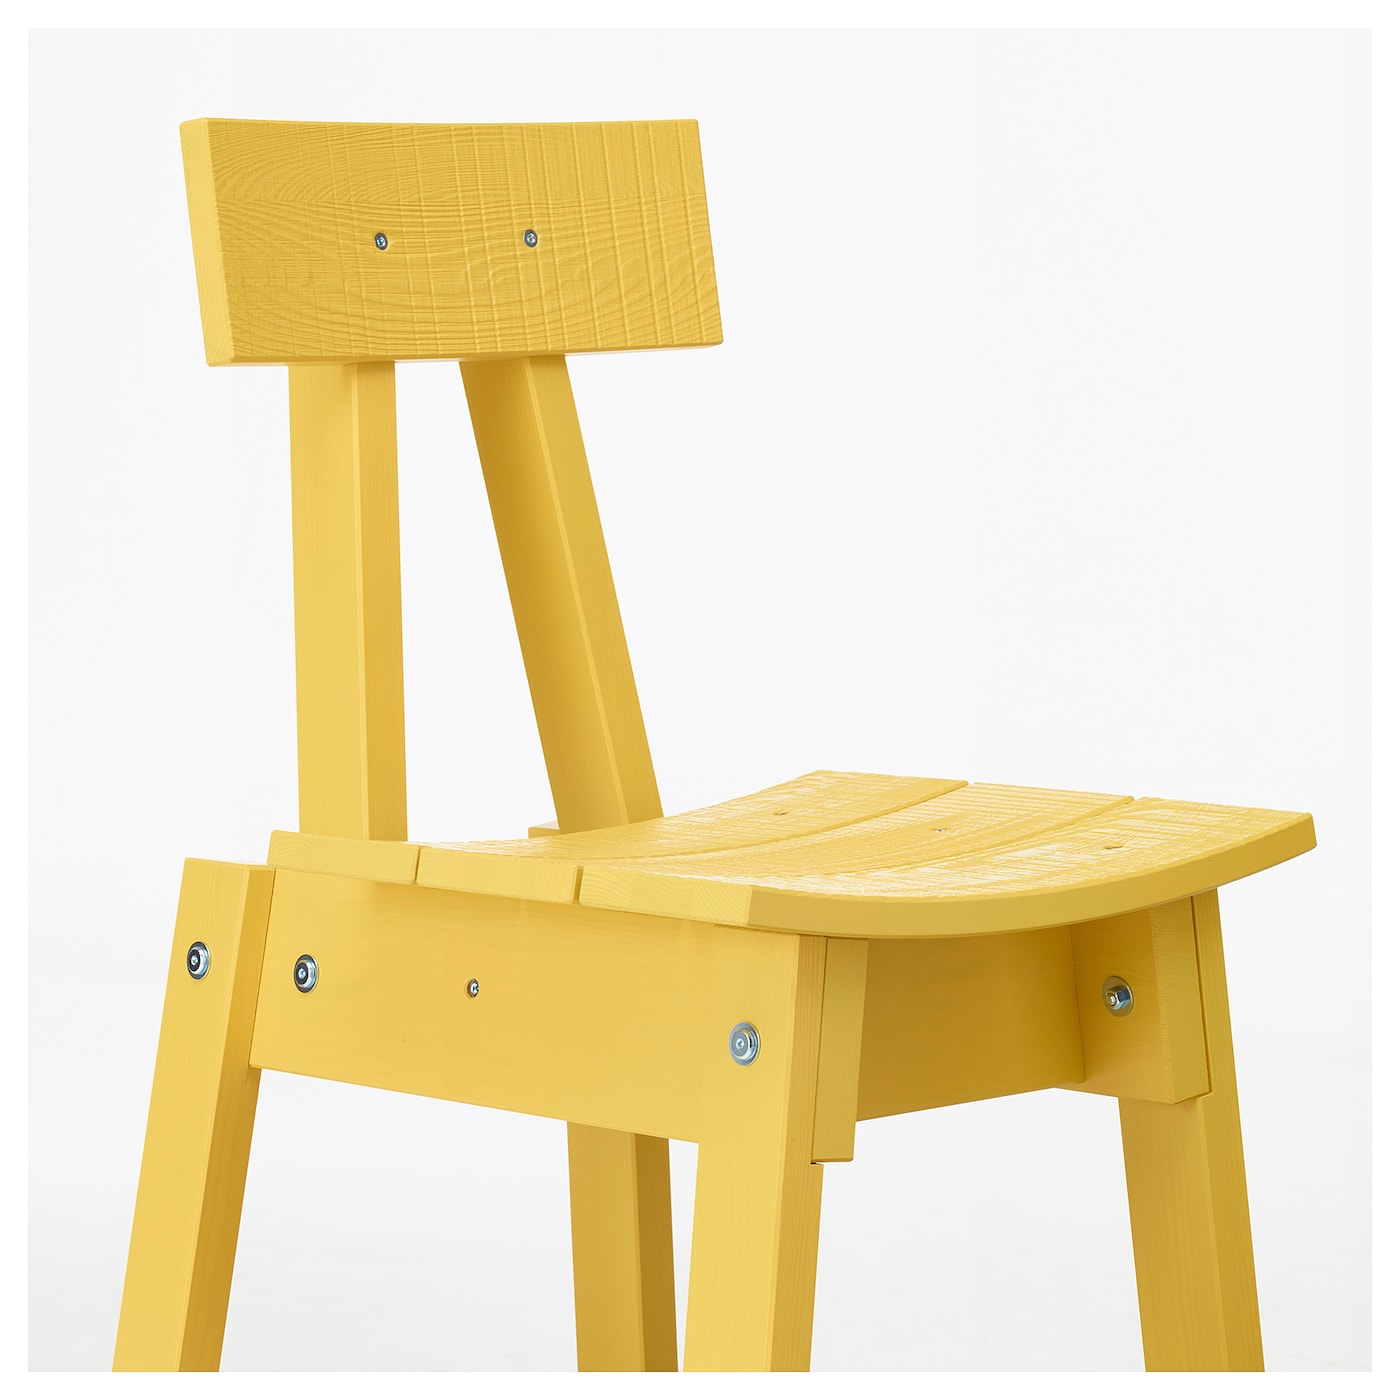 ikea shaped the to industriell en you products s chairs gb desk comfortably back stools sit art and benches seat thanks chair yellow